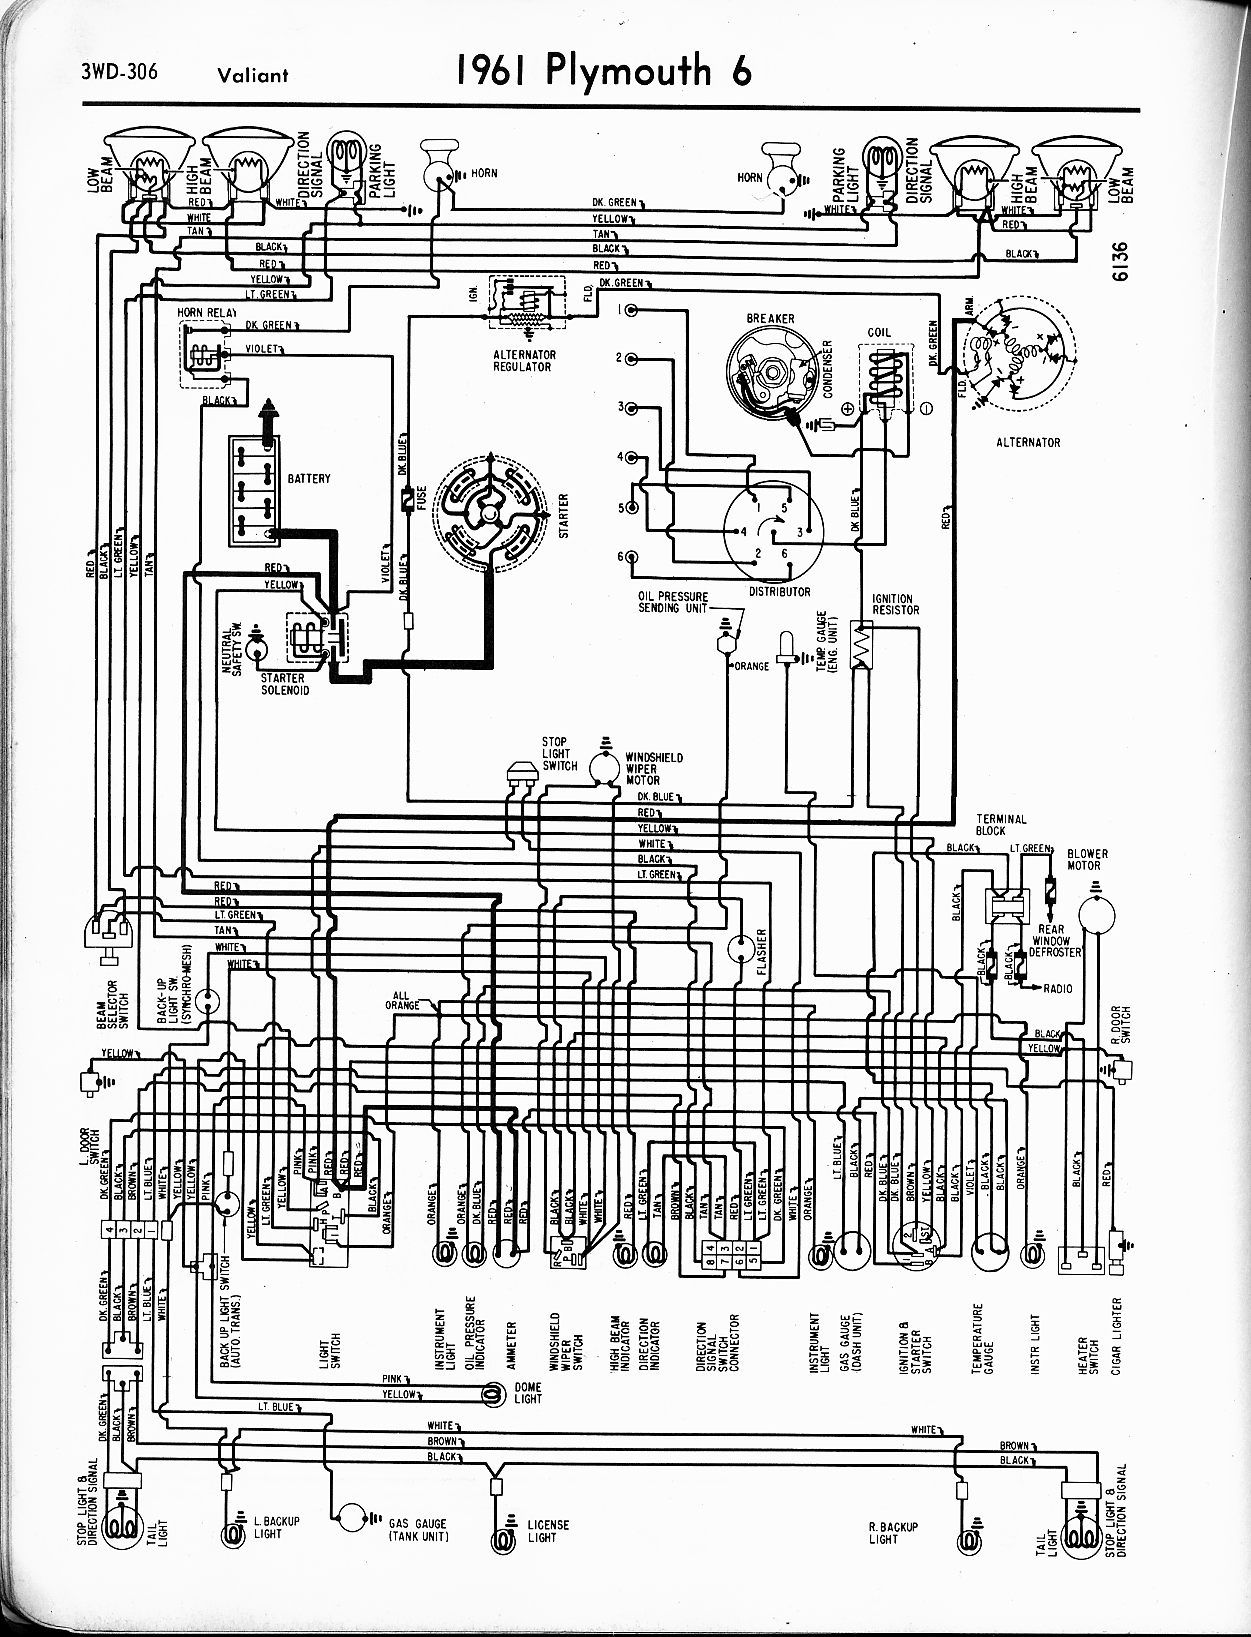 1941 dodge truck wiring diagram